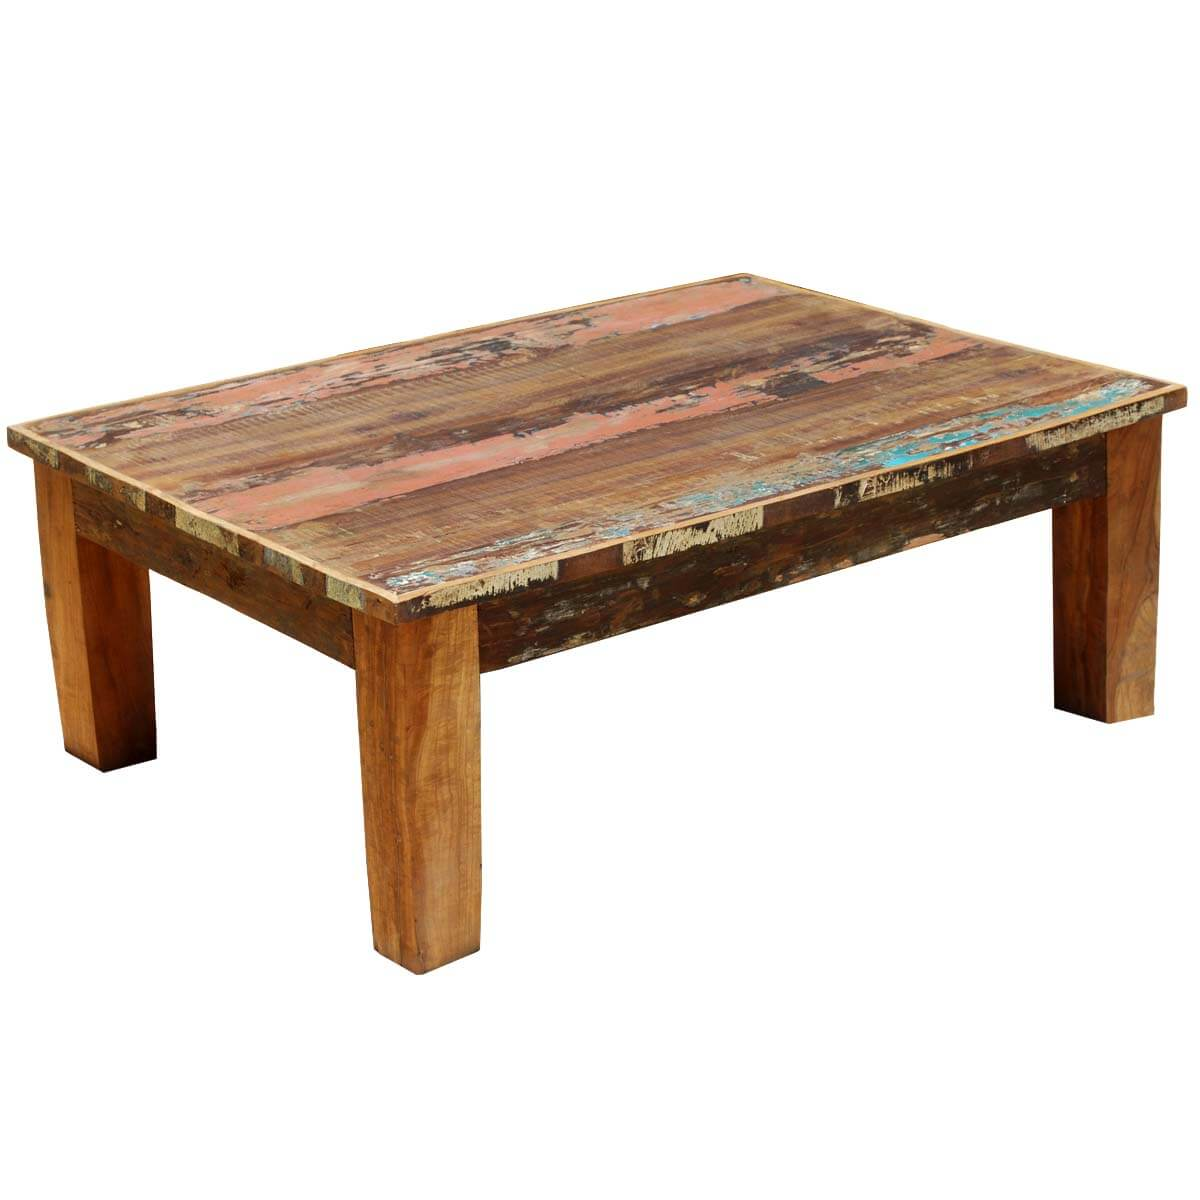 Appalachian rustic mixed reclaimed wood coffee table Bench coffee tables